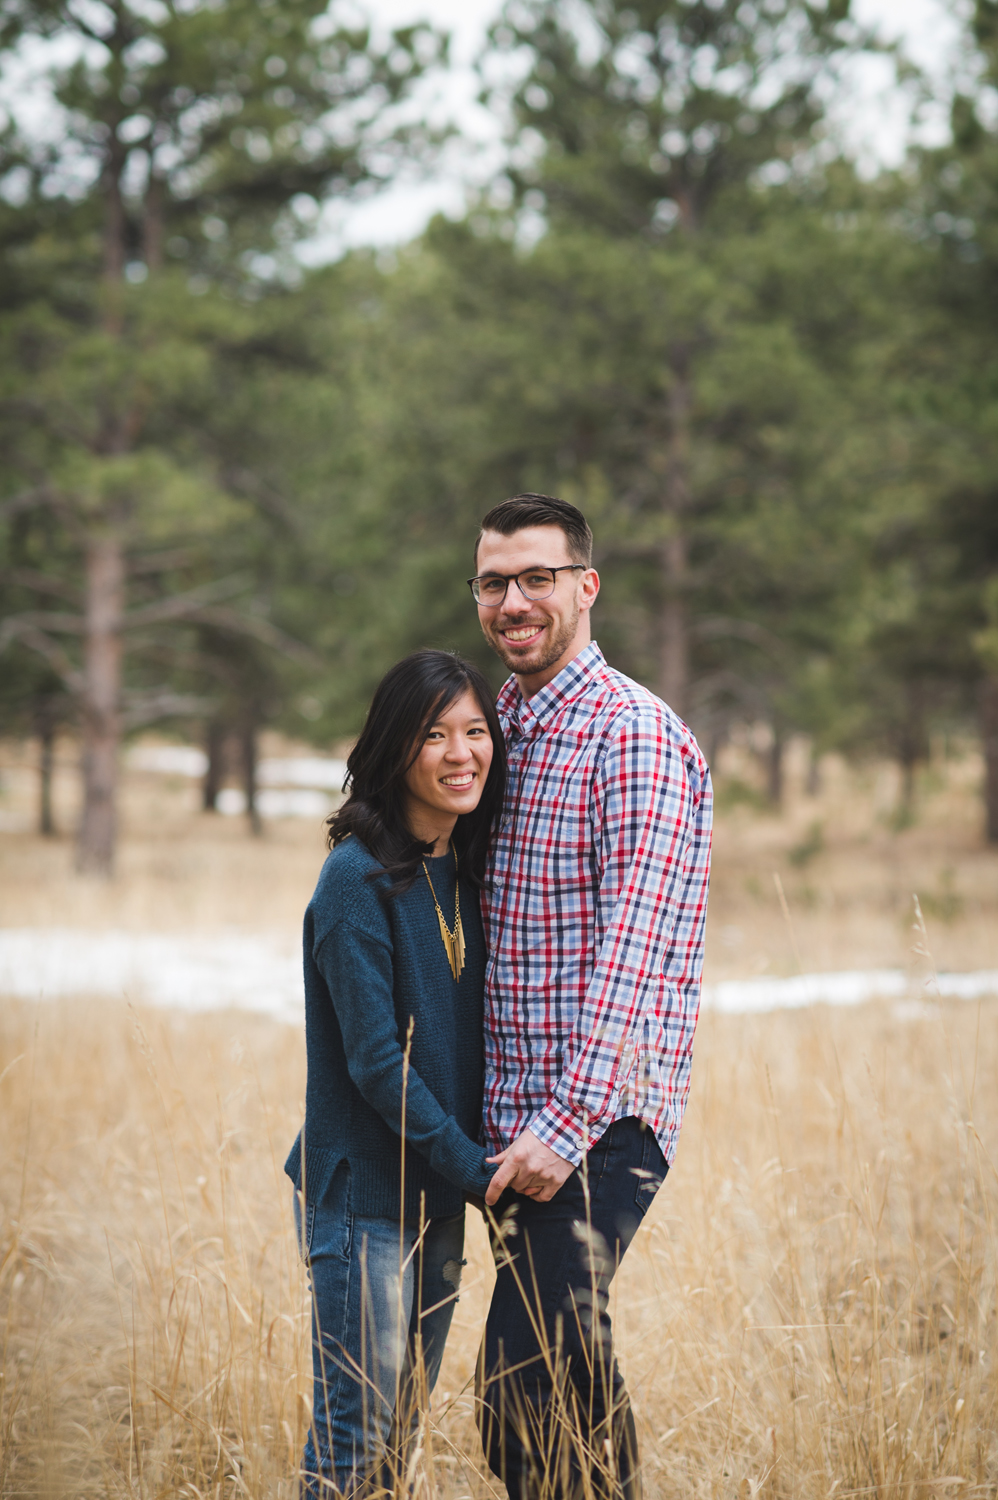 TiffanyandMark_Engaged_0086_squarespace.jpg